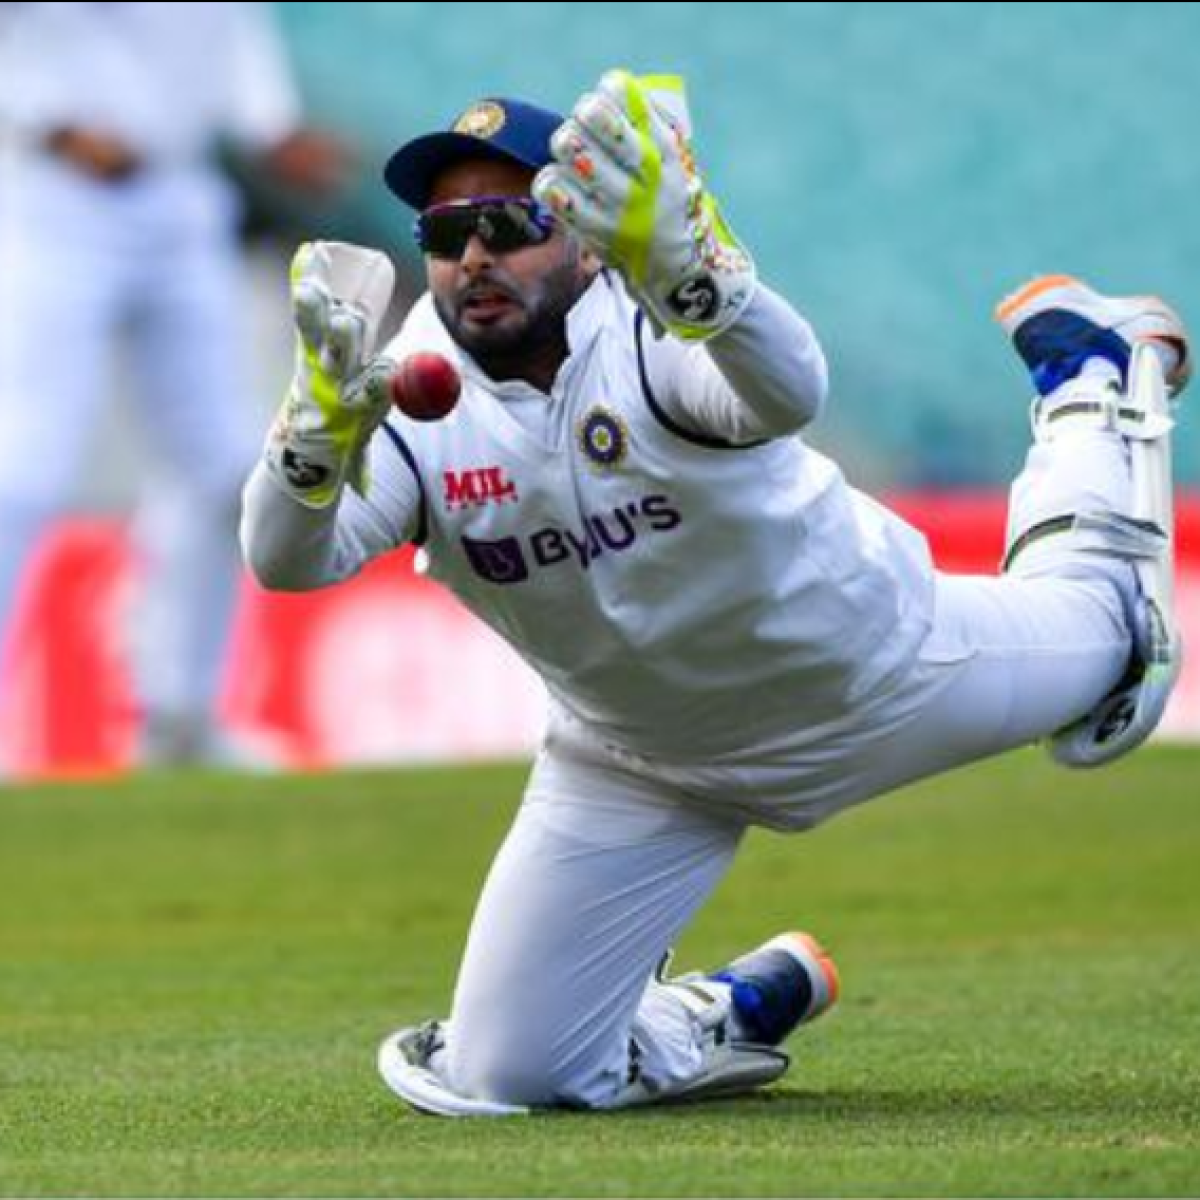 'More errors than Kamran Akmal': Rishabh Pant trolled for dropping two catches of debutant Will Pucovski in 3rd Test